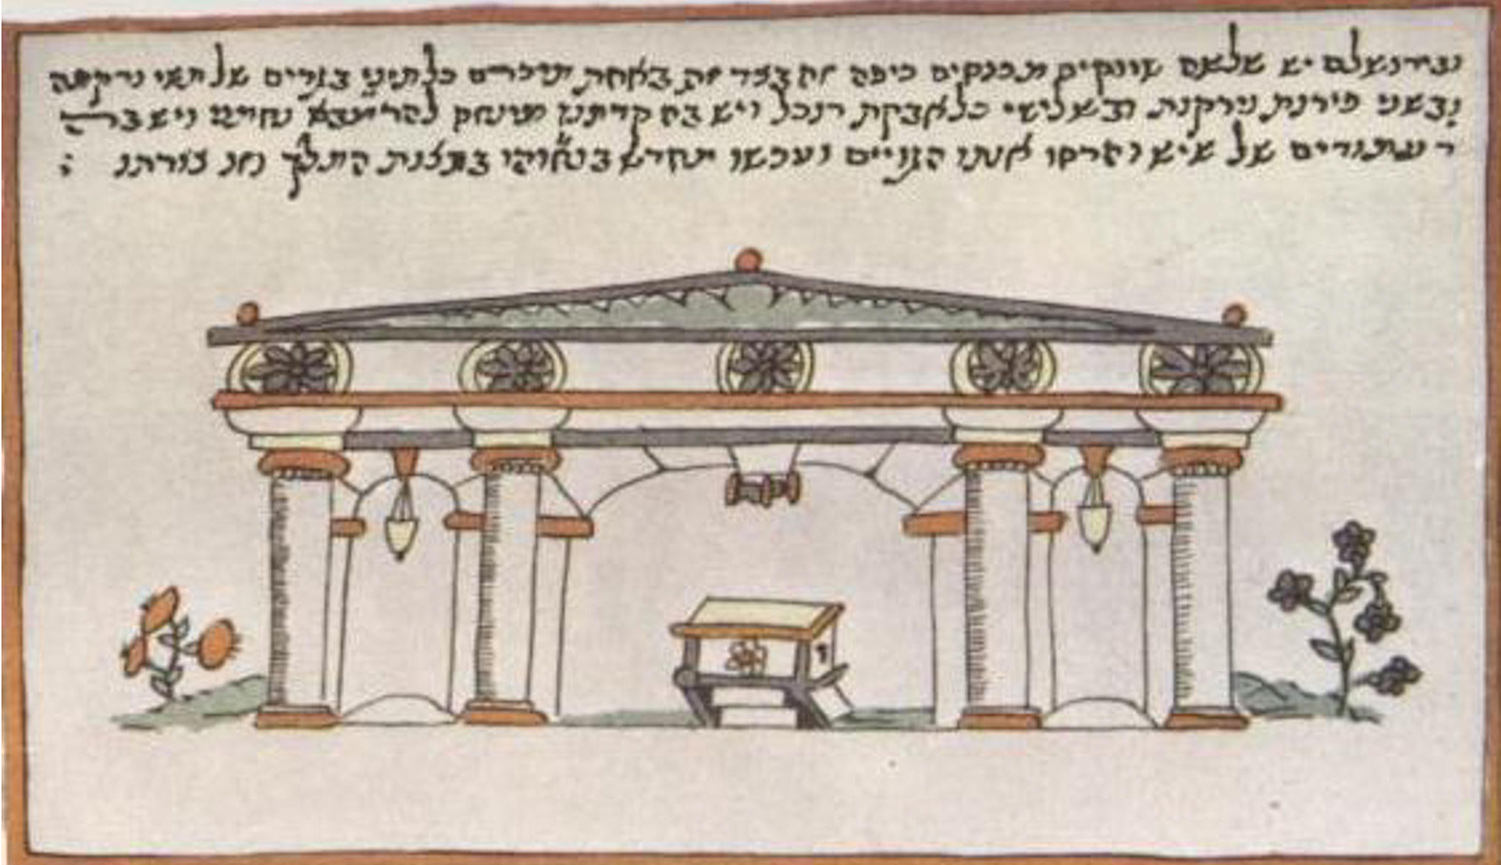 A sixteenth-century illustration of the Ramban Synagogue in Jerusalem. ART Collection / Alamy Stock Photo.